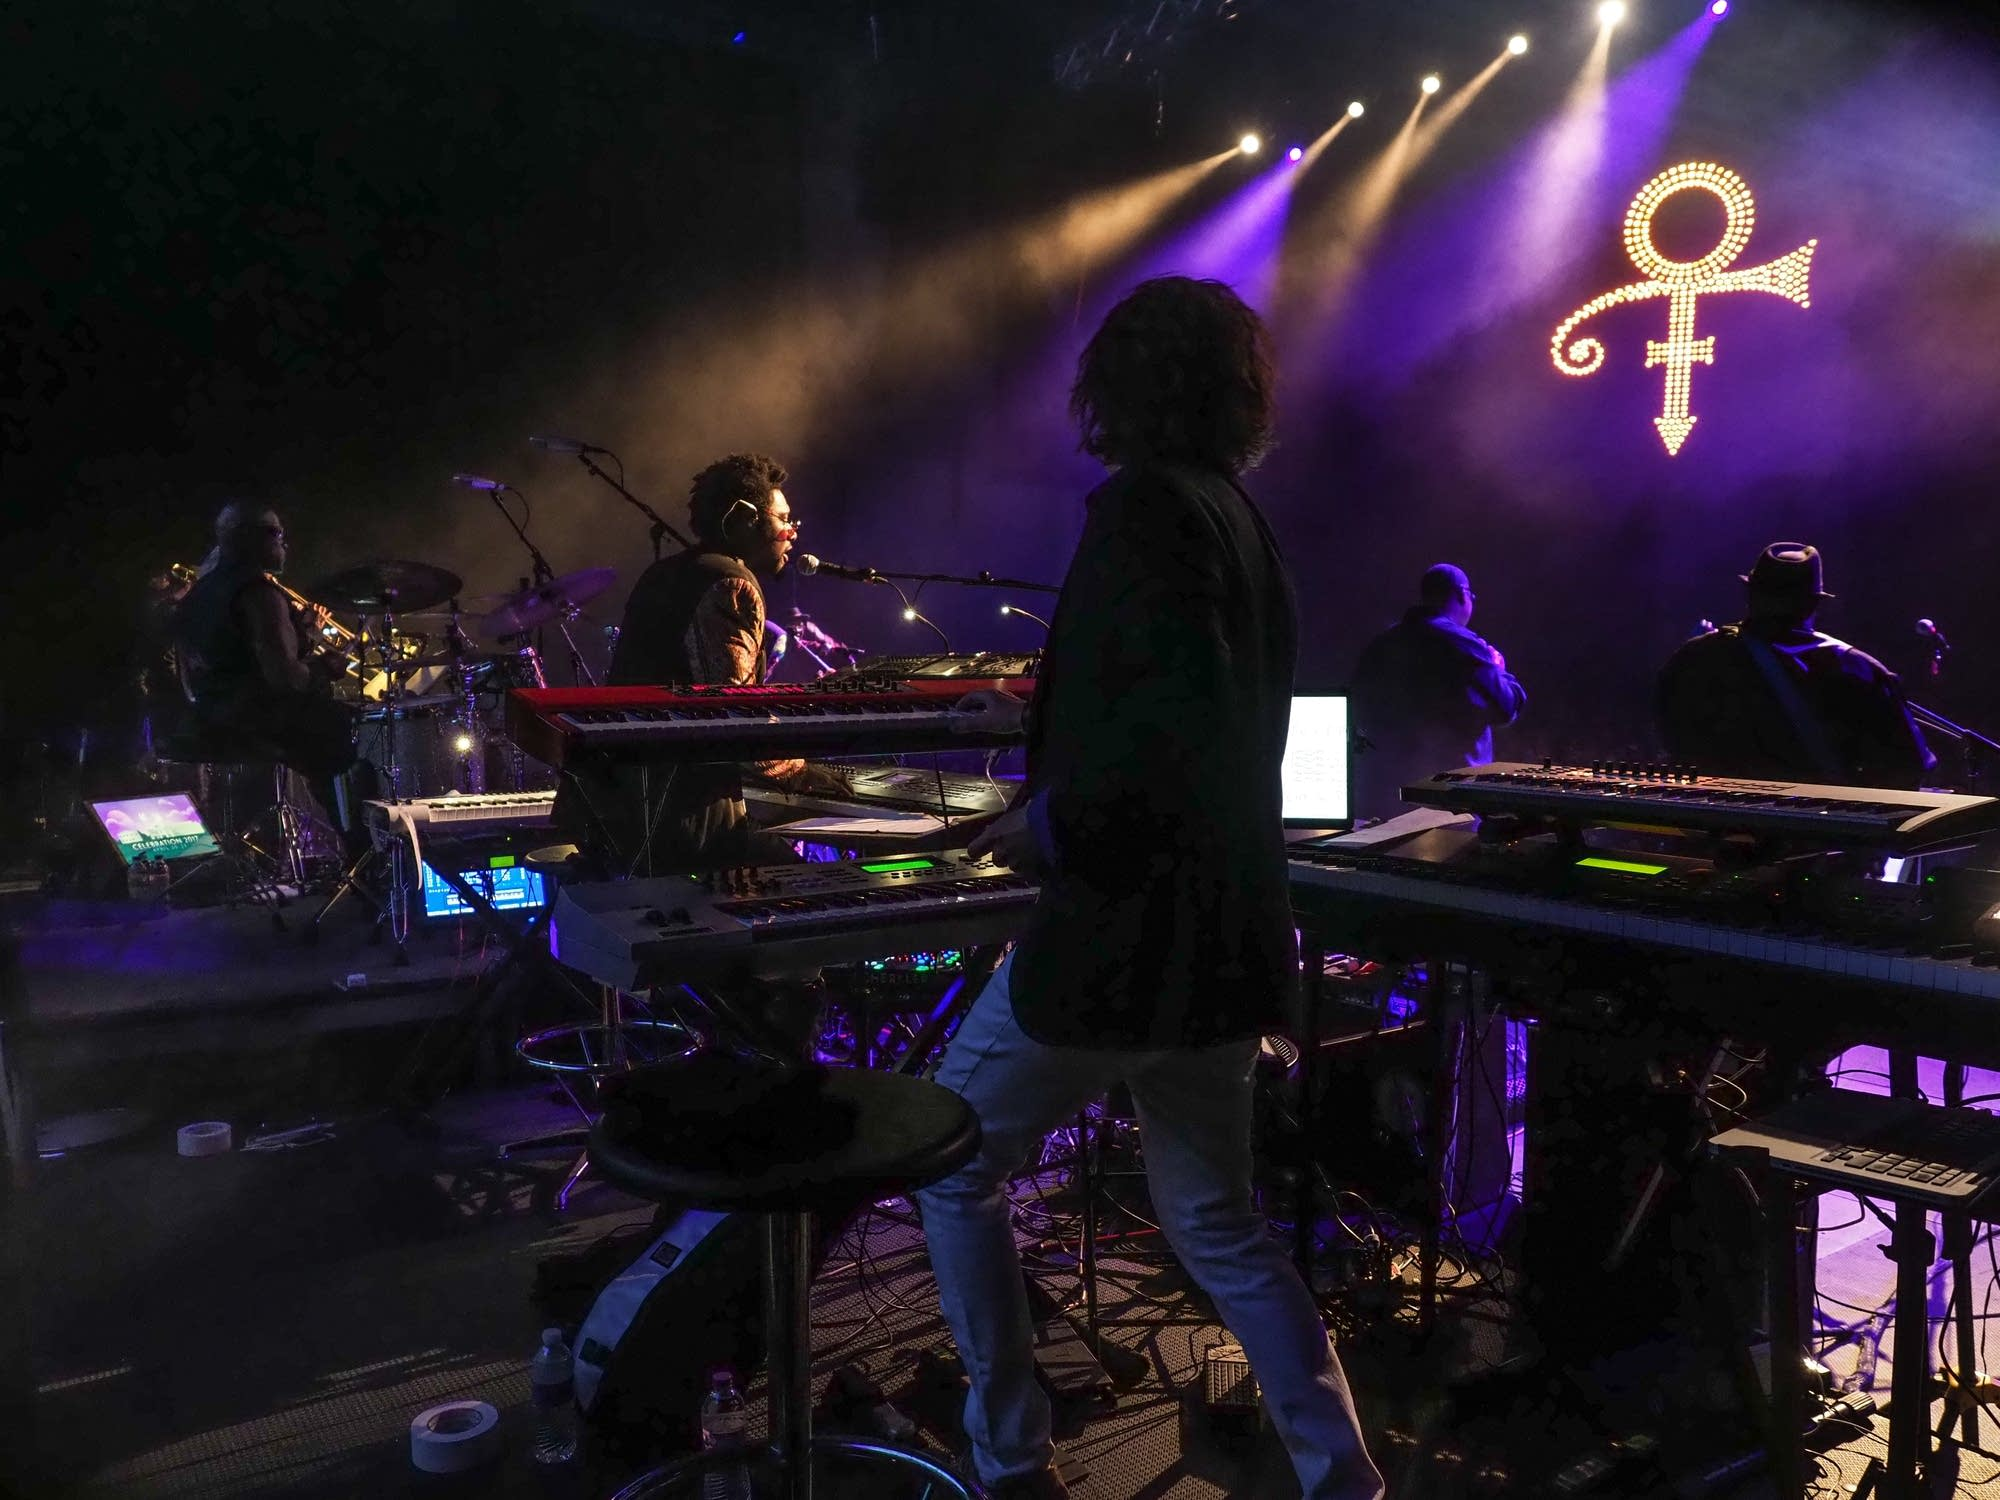 New Power Generation performing at Paisley Park in 2017